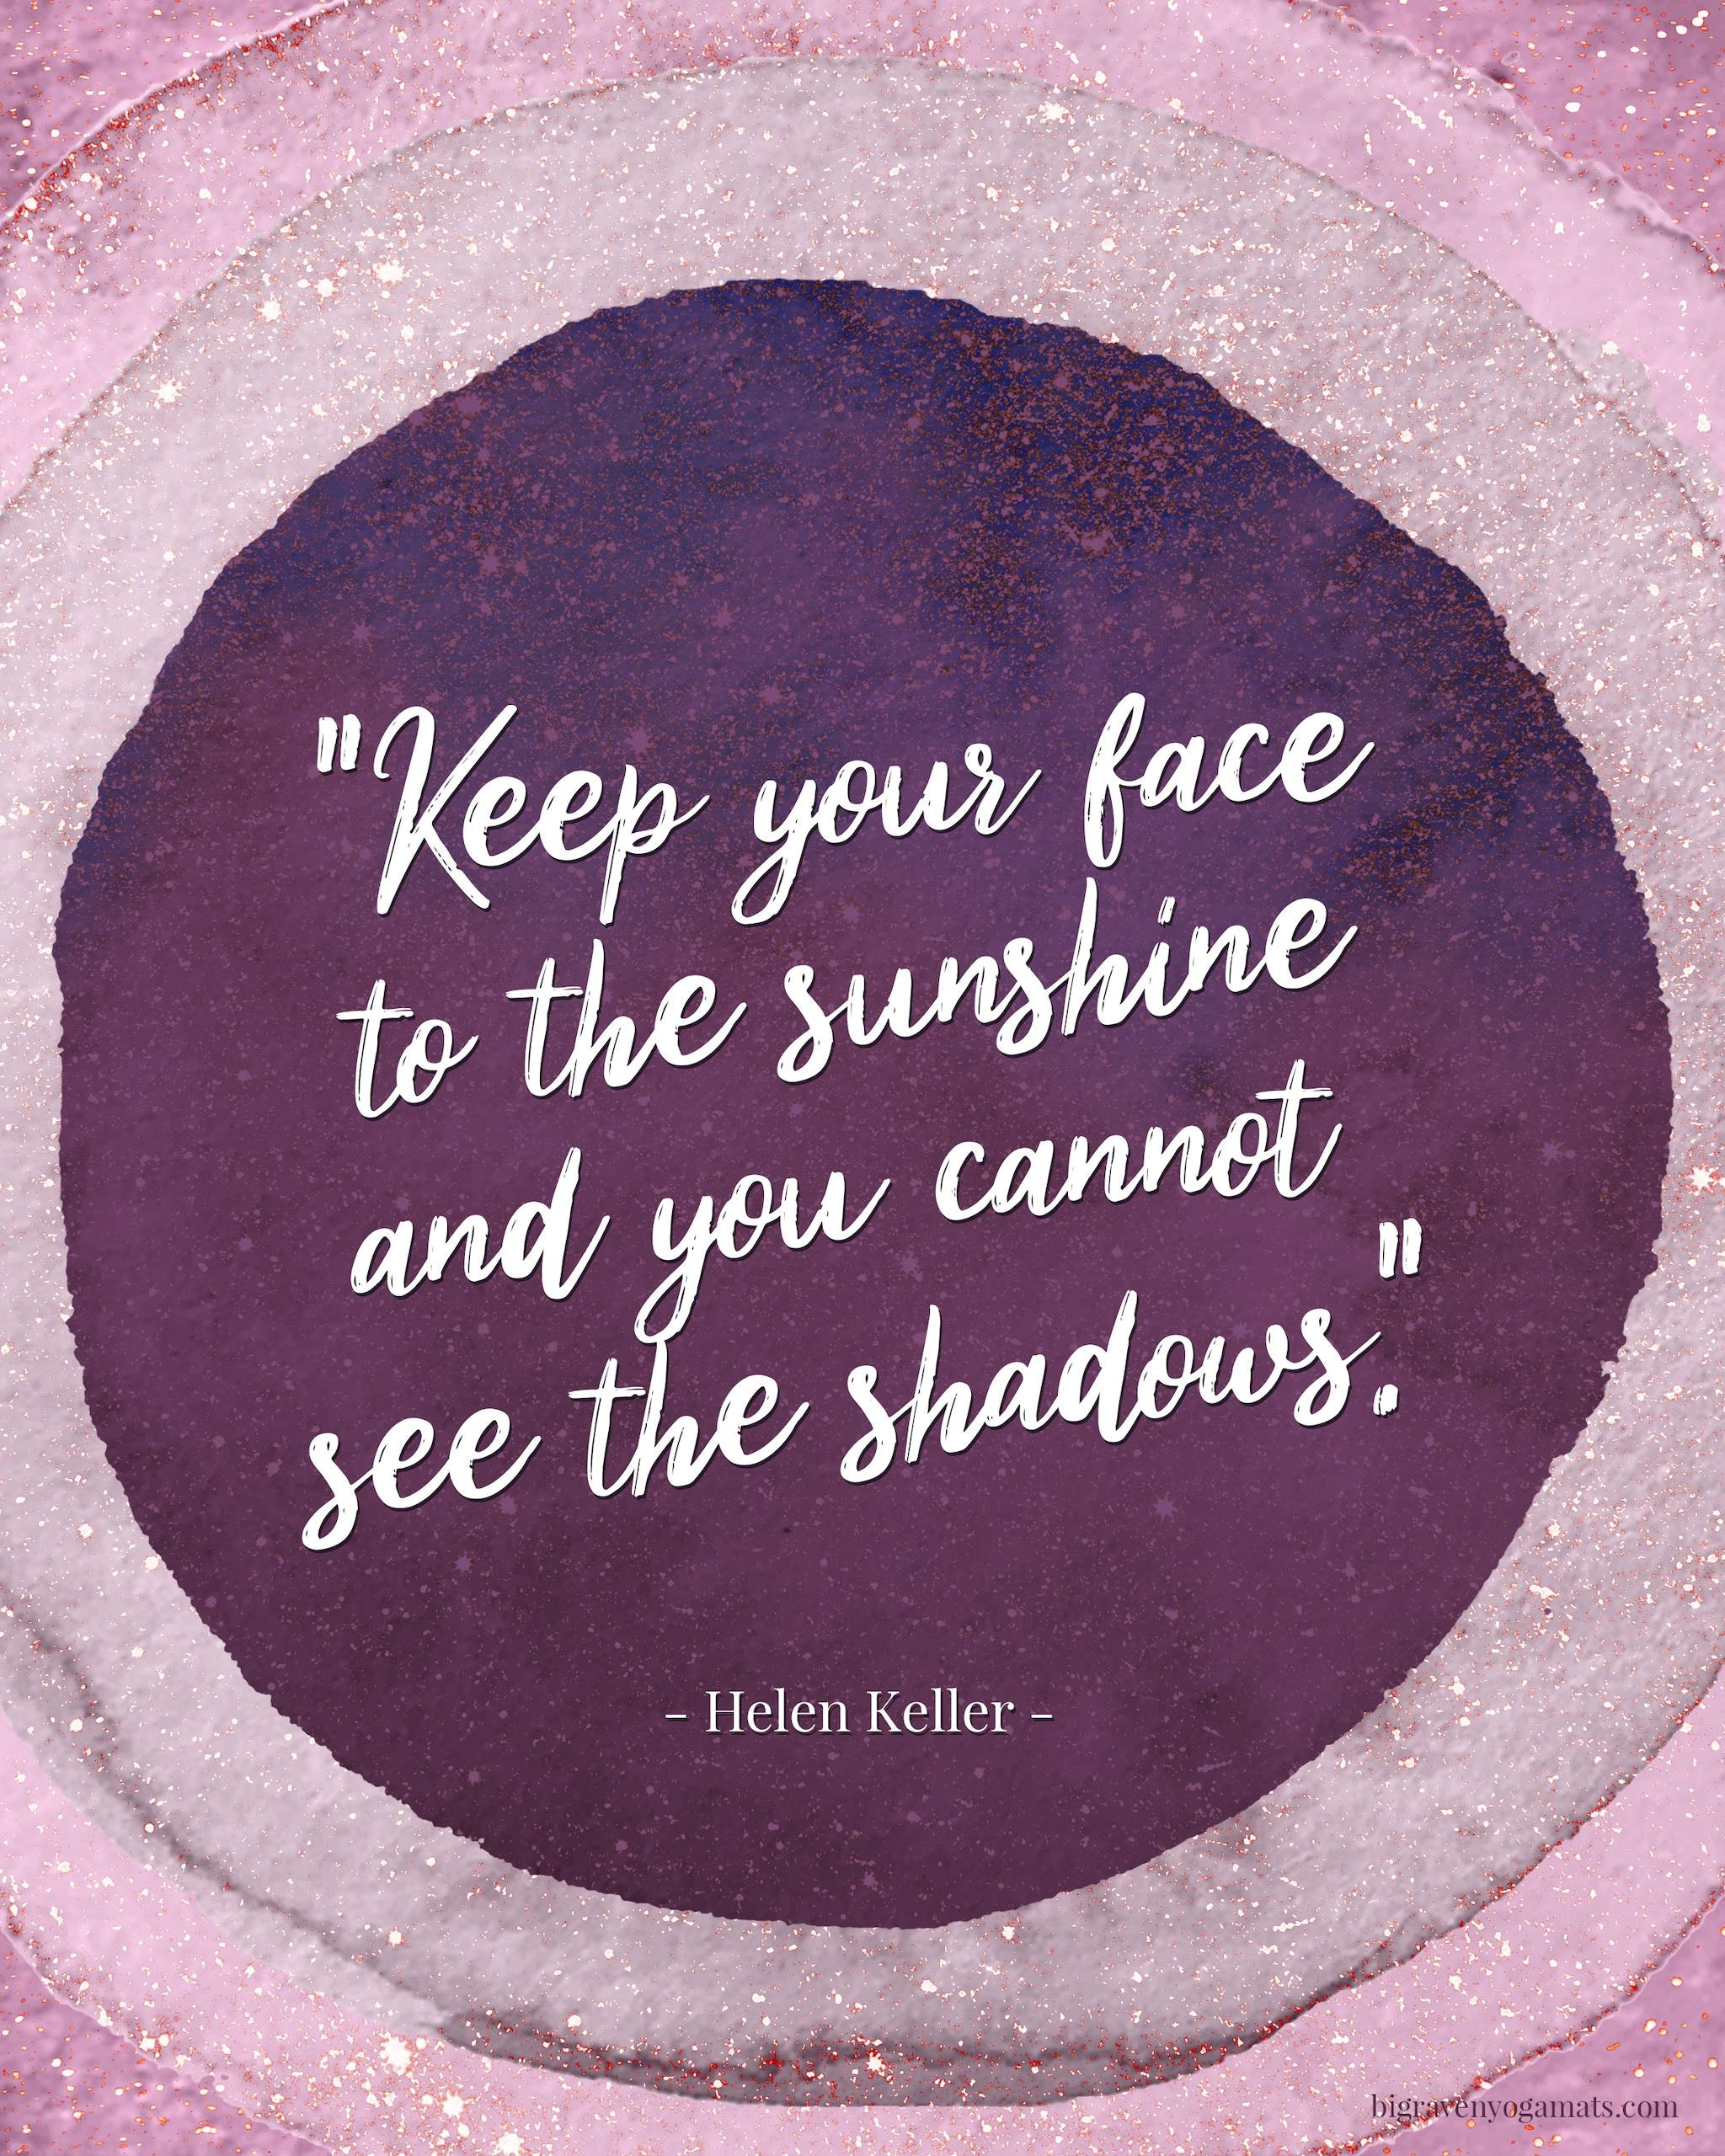 Quote: Keep your face to the sunshine and you cannot see the shadows. Helen Keller.